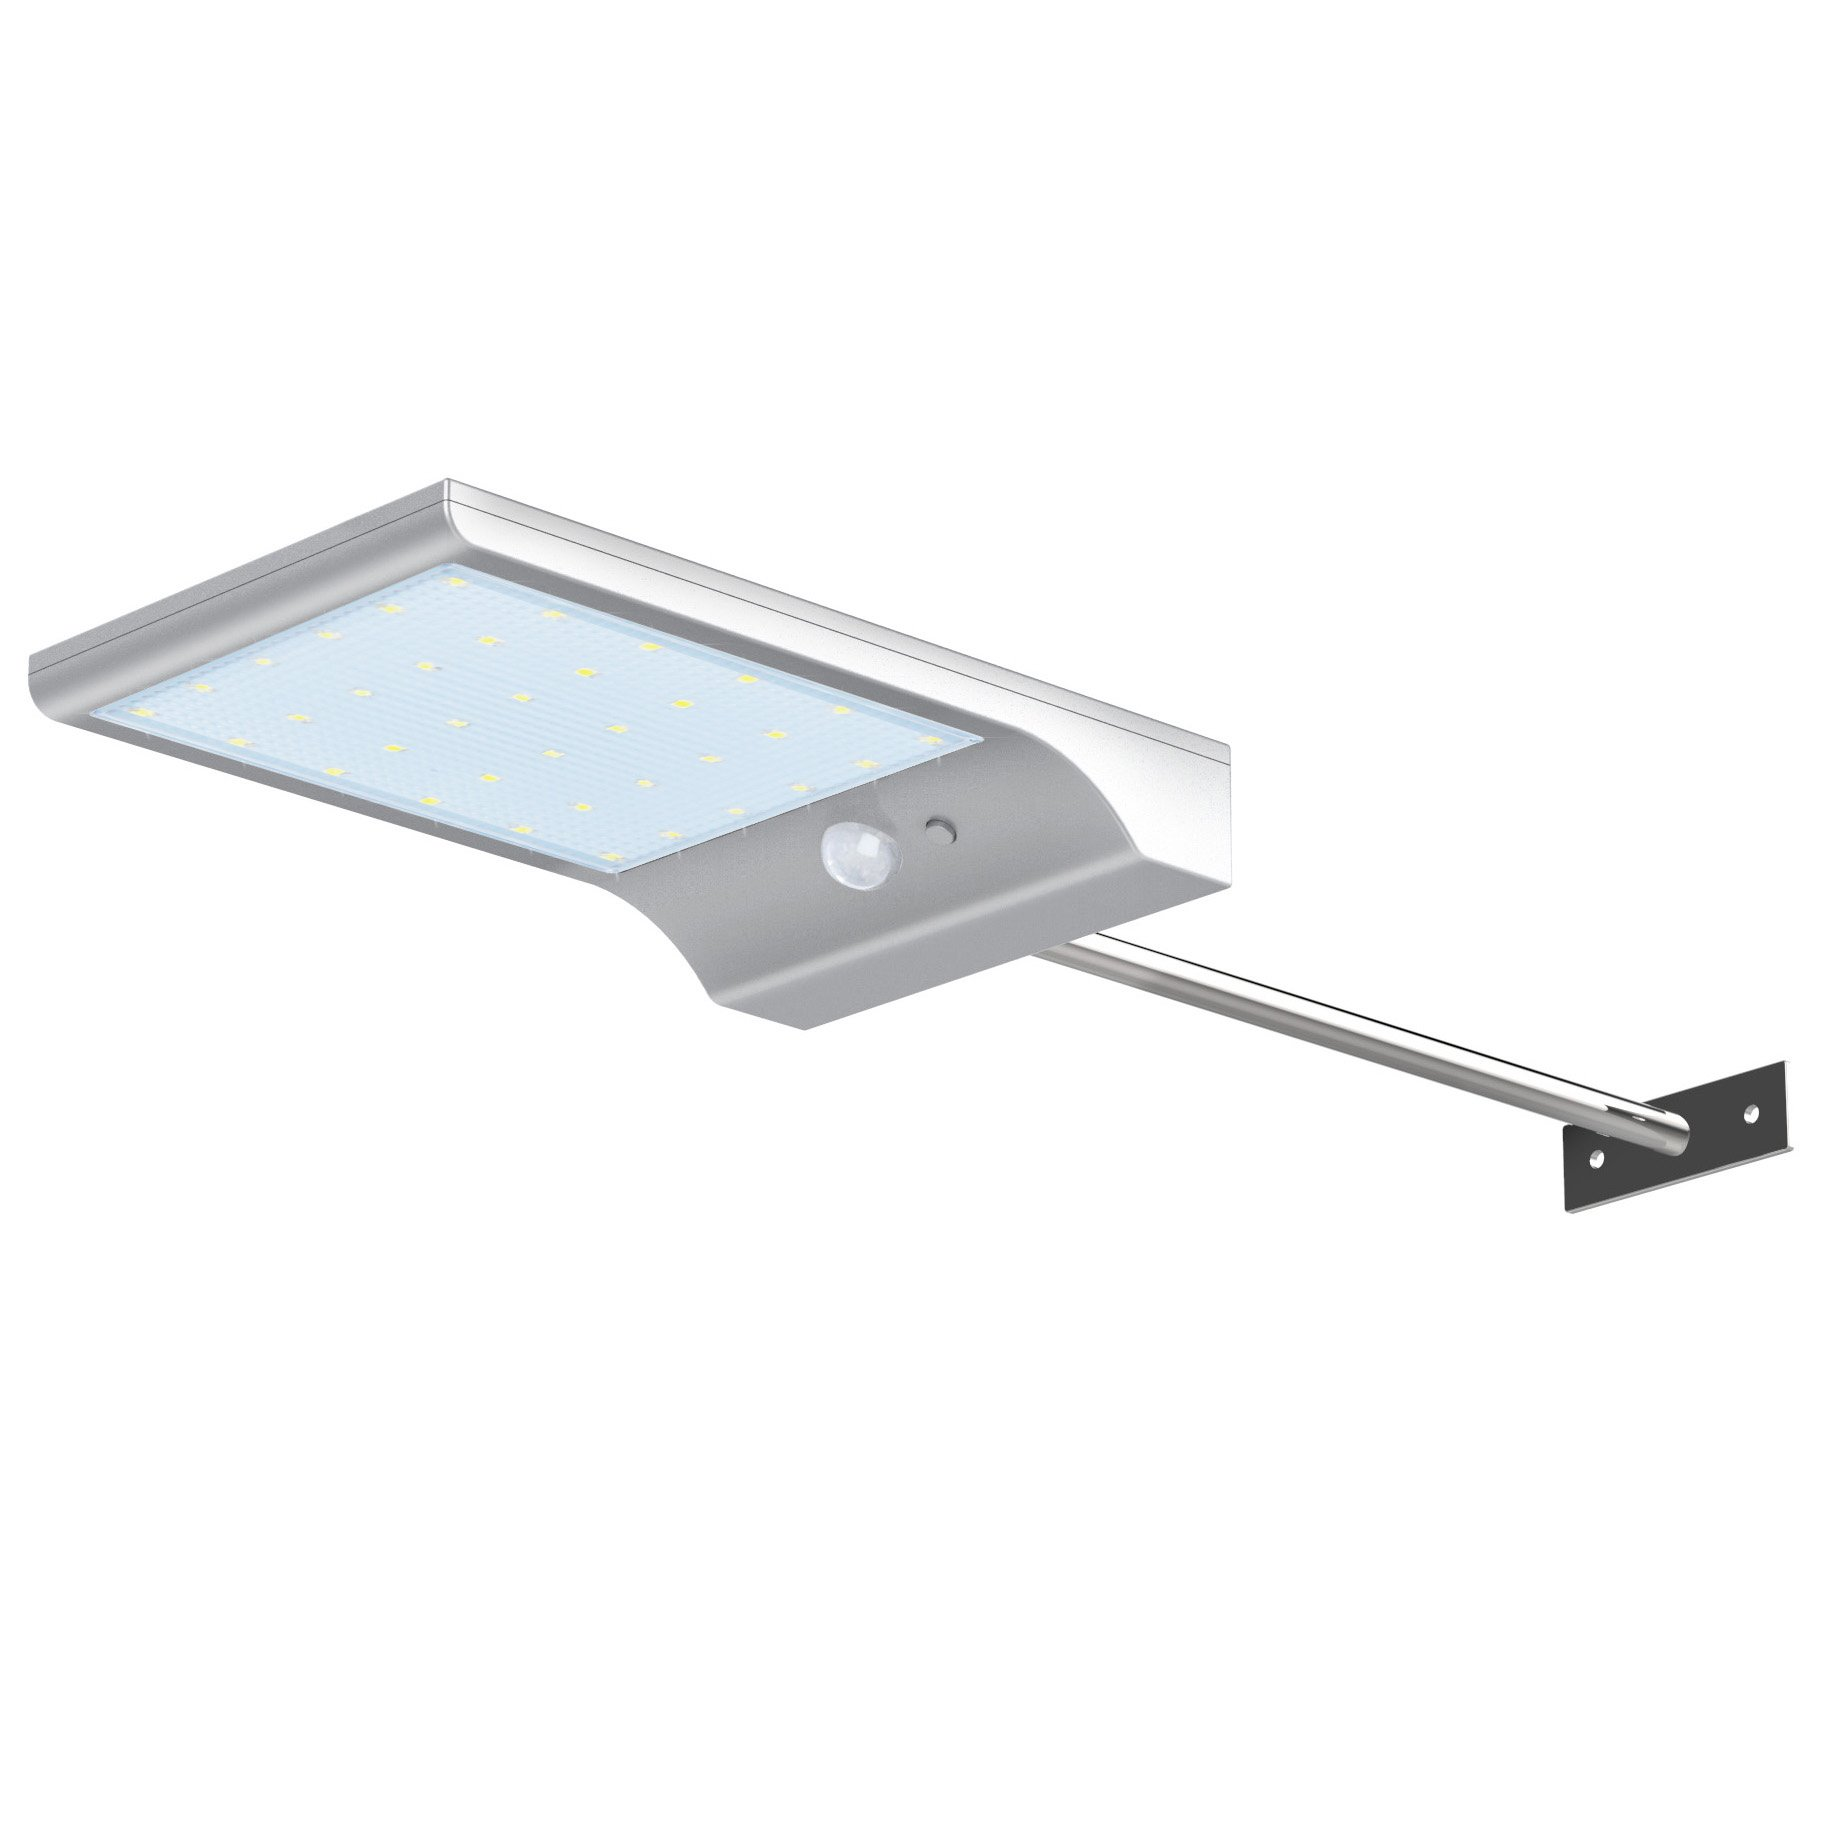 InnoGear Solar Gutter Lights Wall Sconces with Mounting Pole Outdoor Motion Sensor Detector Light Security Lighting for Barn Porch Garage, Pack of 1